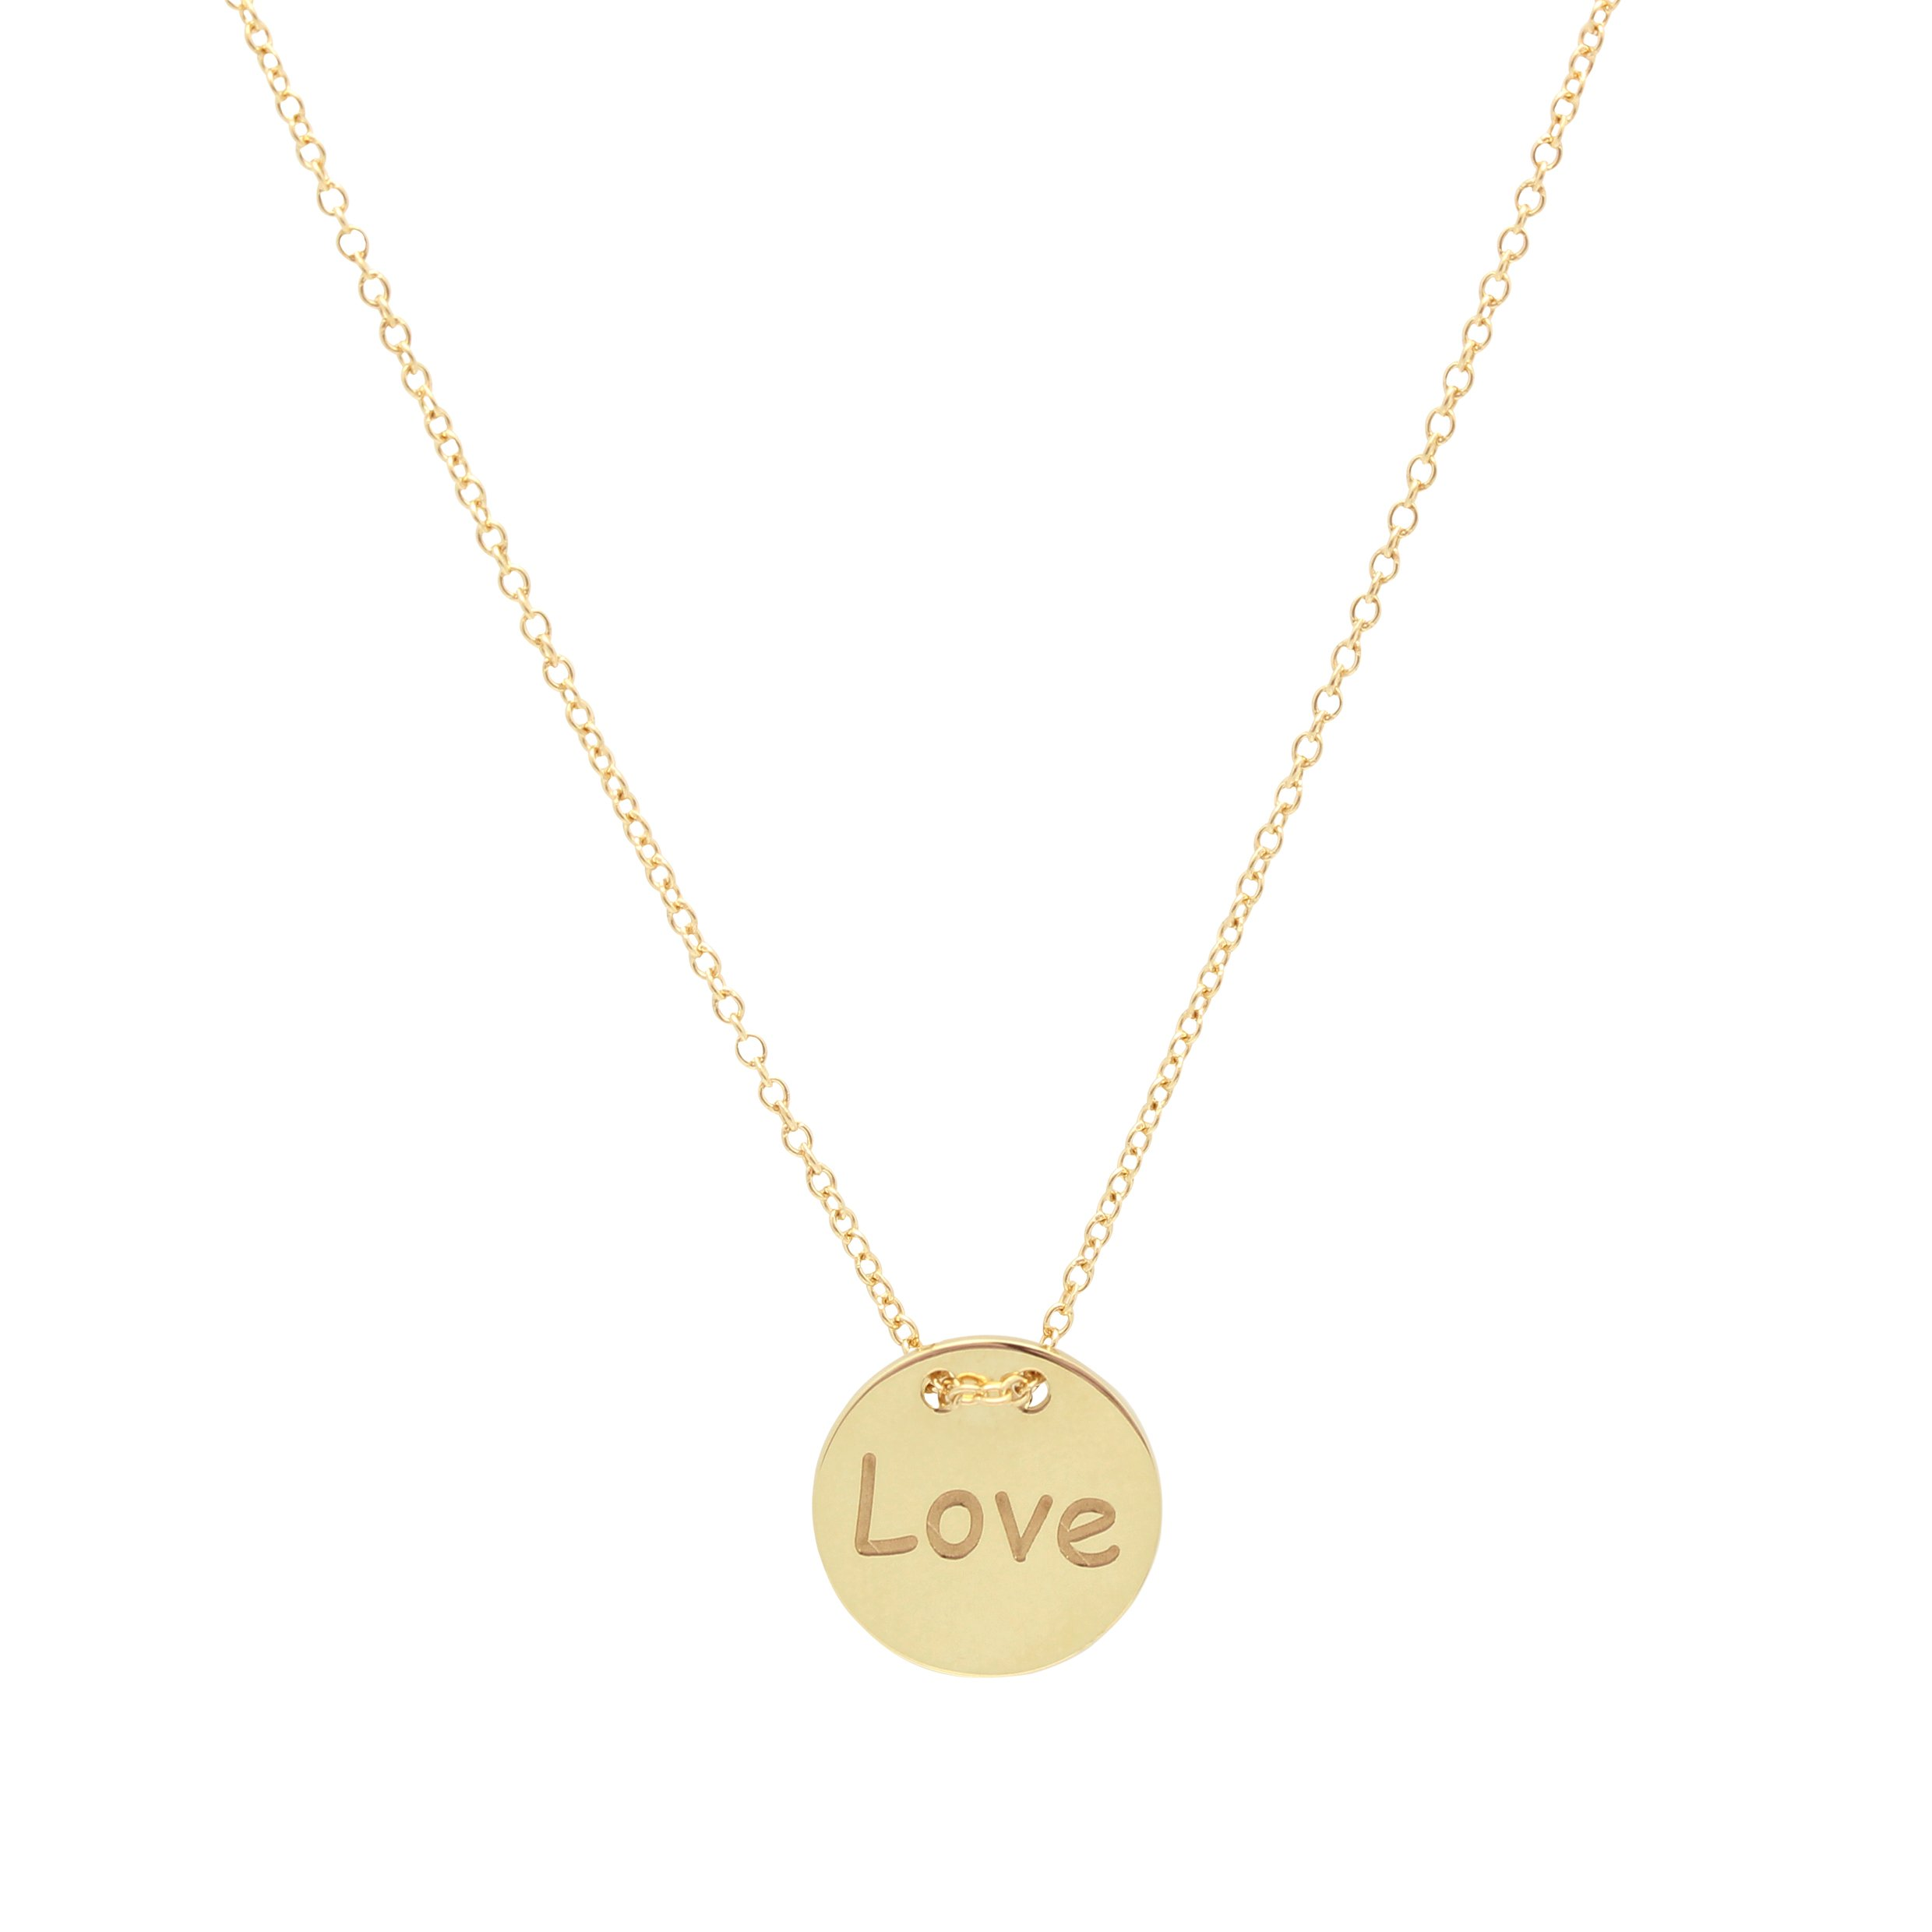 UNICORNJ Adult Tweens Teens 14k Yellow Gold Polished Disc Love Pendant Necklace 16'' Italy